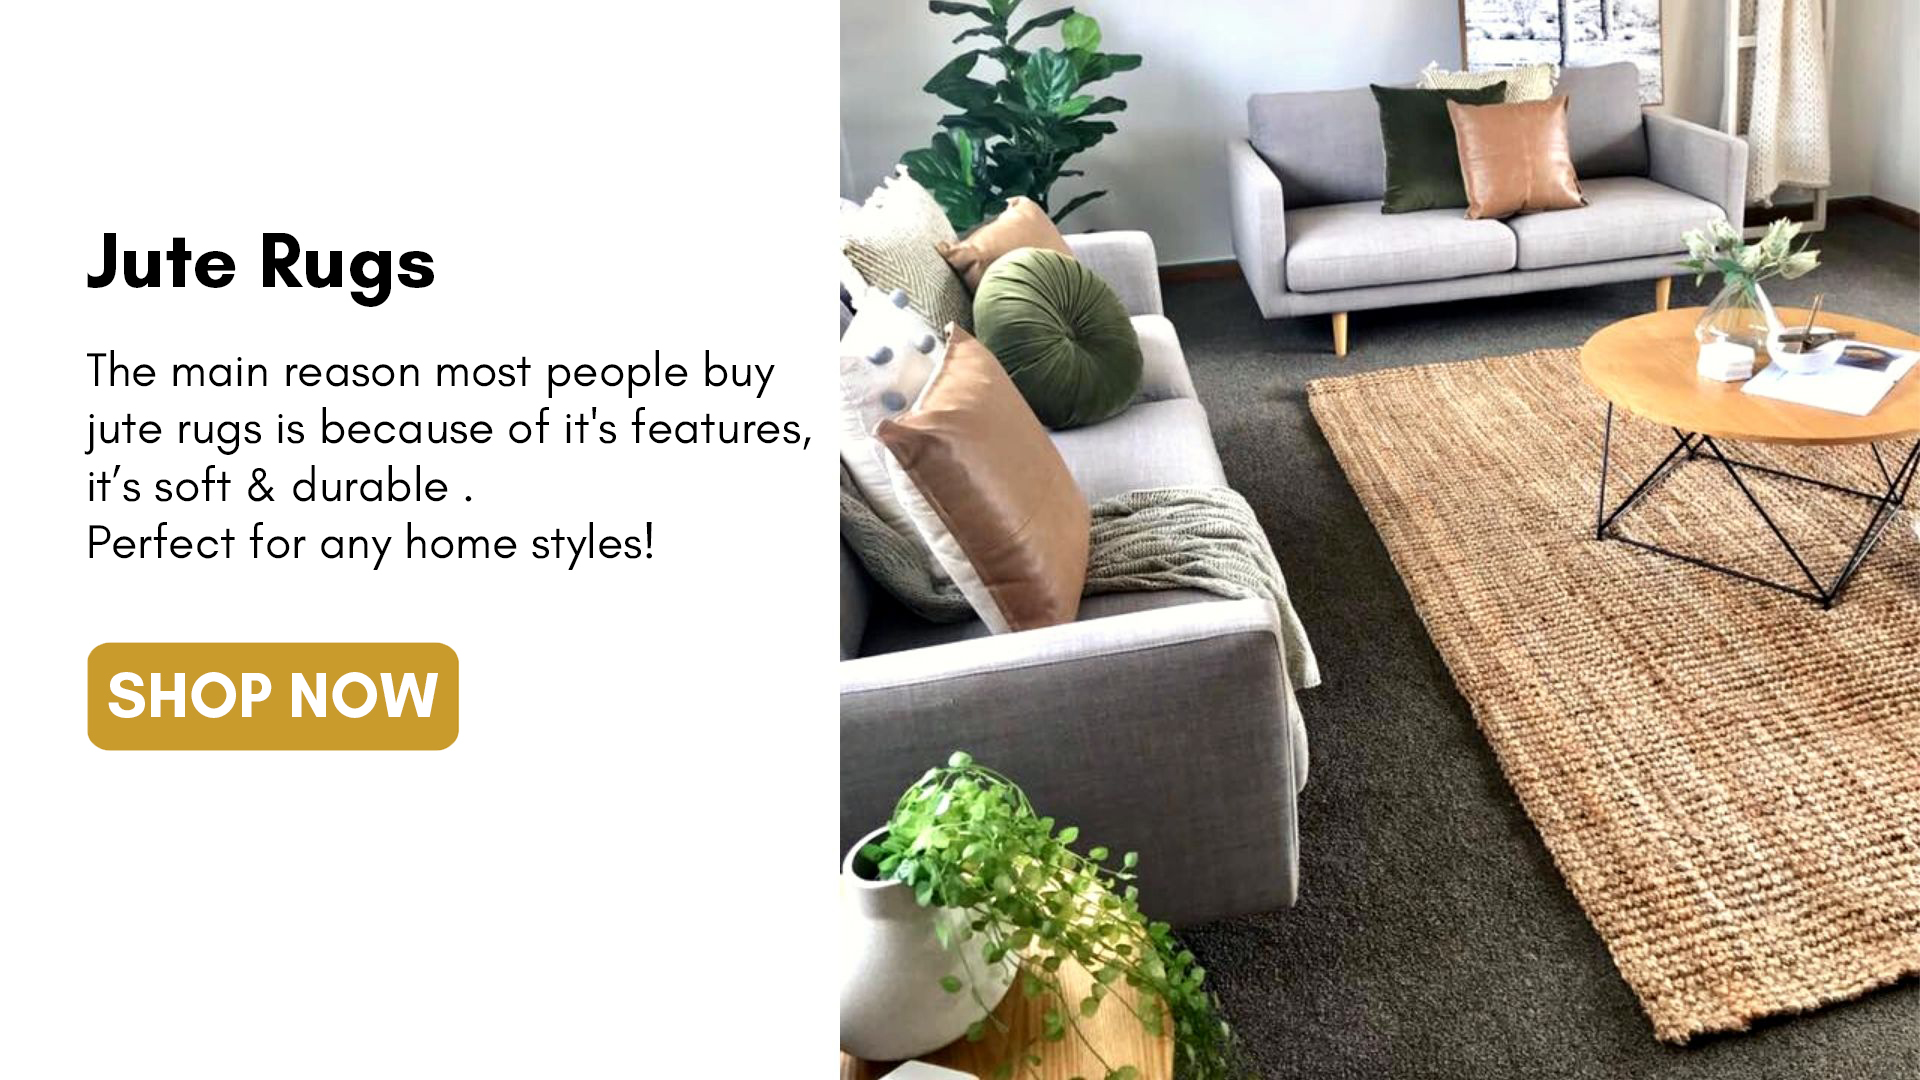 The Jute Rug is made in India from jute a highly sustainable, rapidly renewable resource and a particularly durable material.